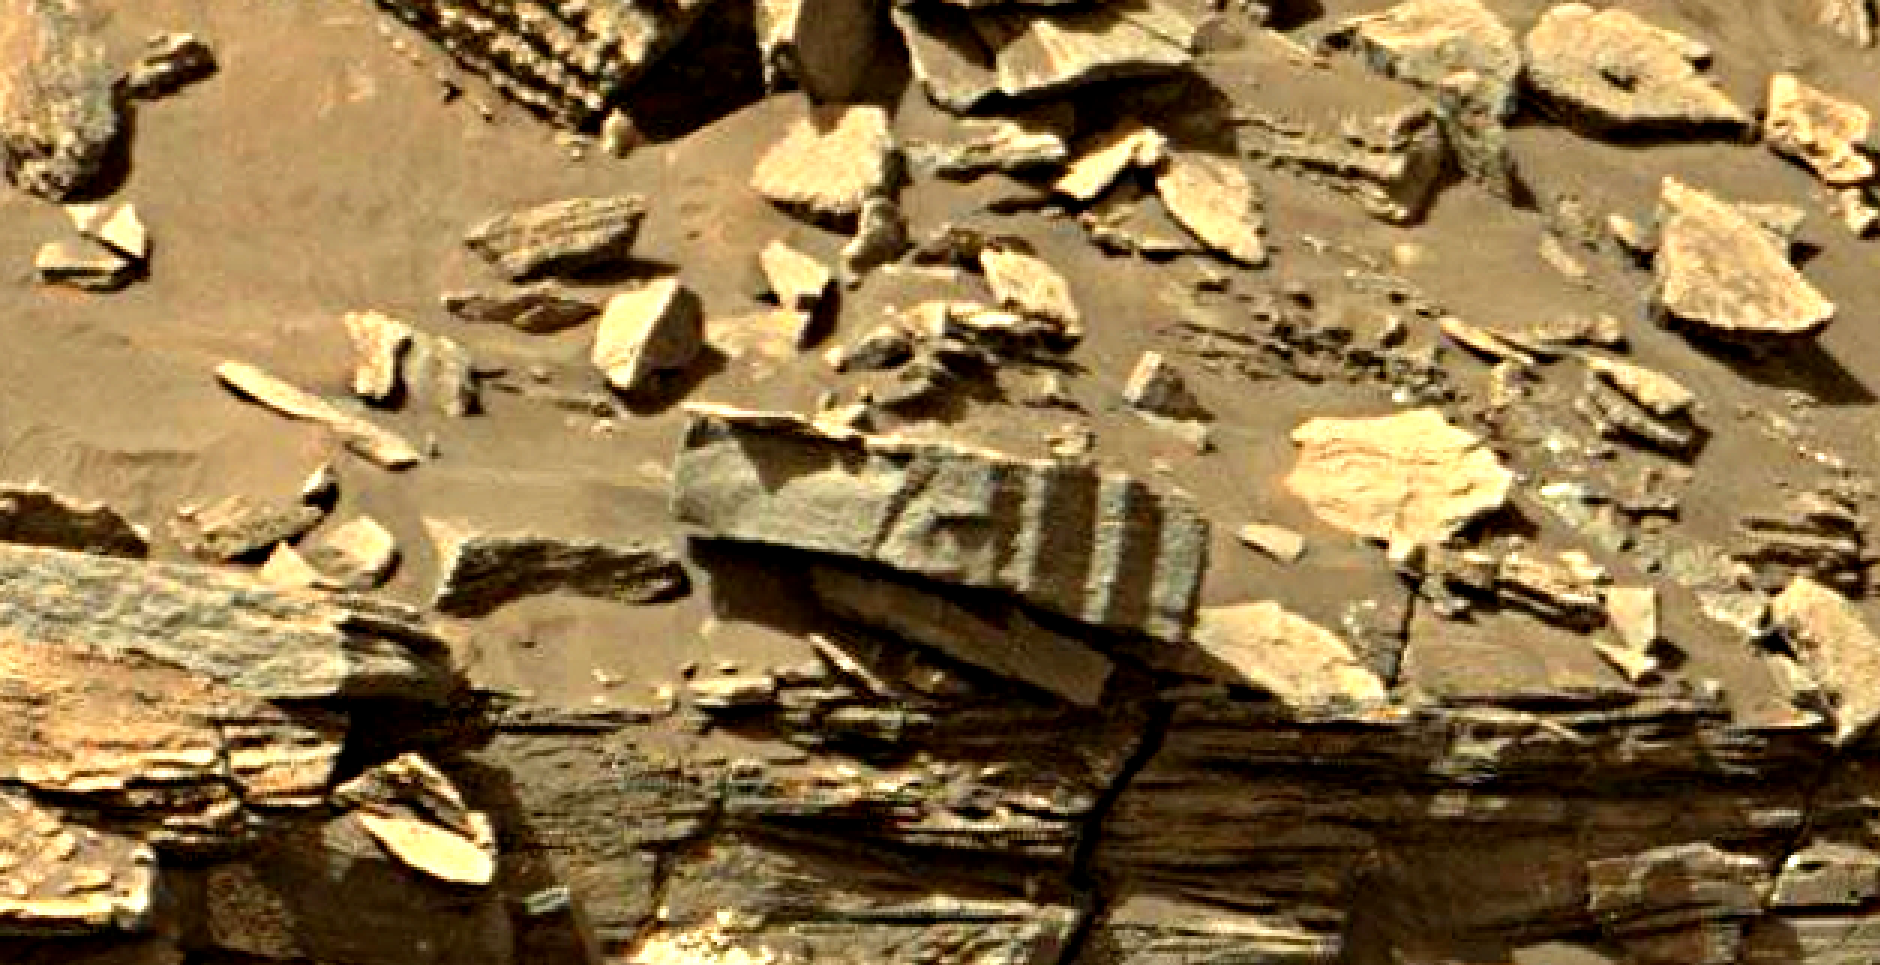 mars-sol-1454-anomaly-artifacts-3-was-life-on-mars